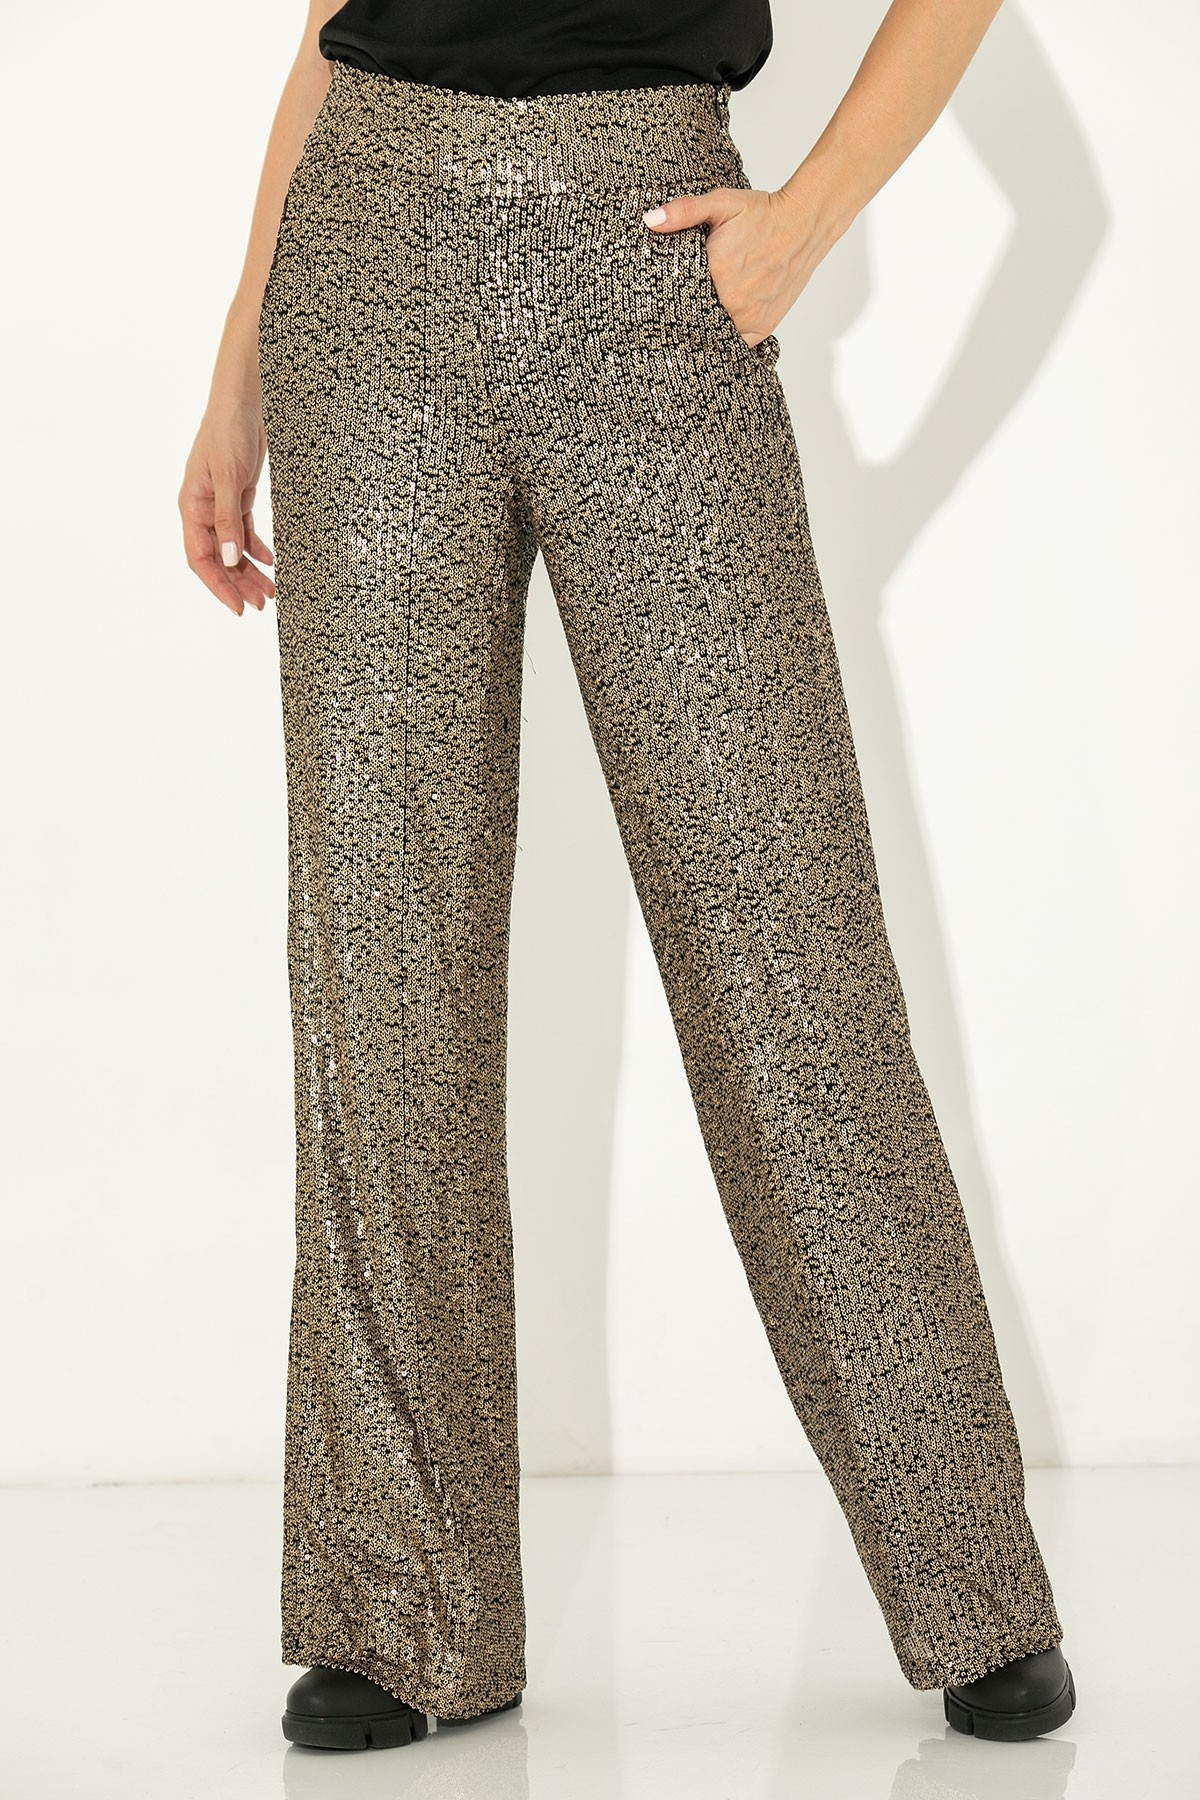 GOLD HIGH WAIST SEQUIN TROUSERS